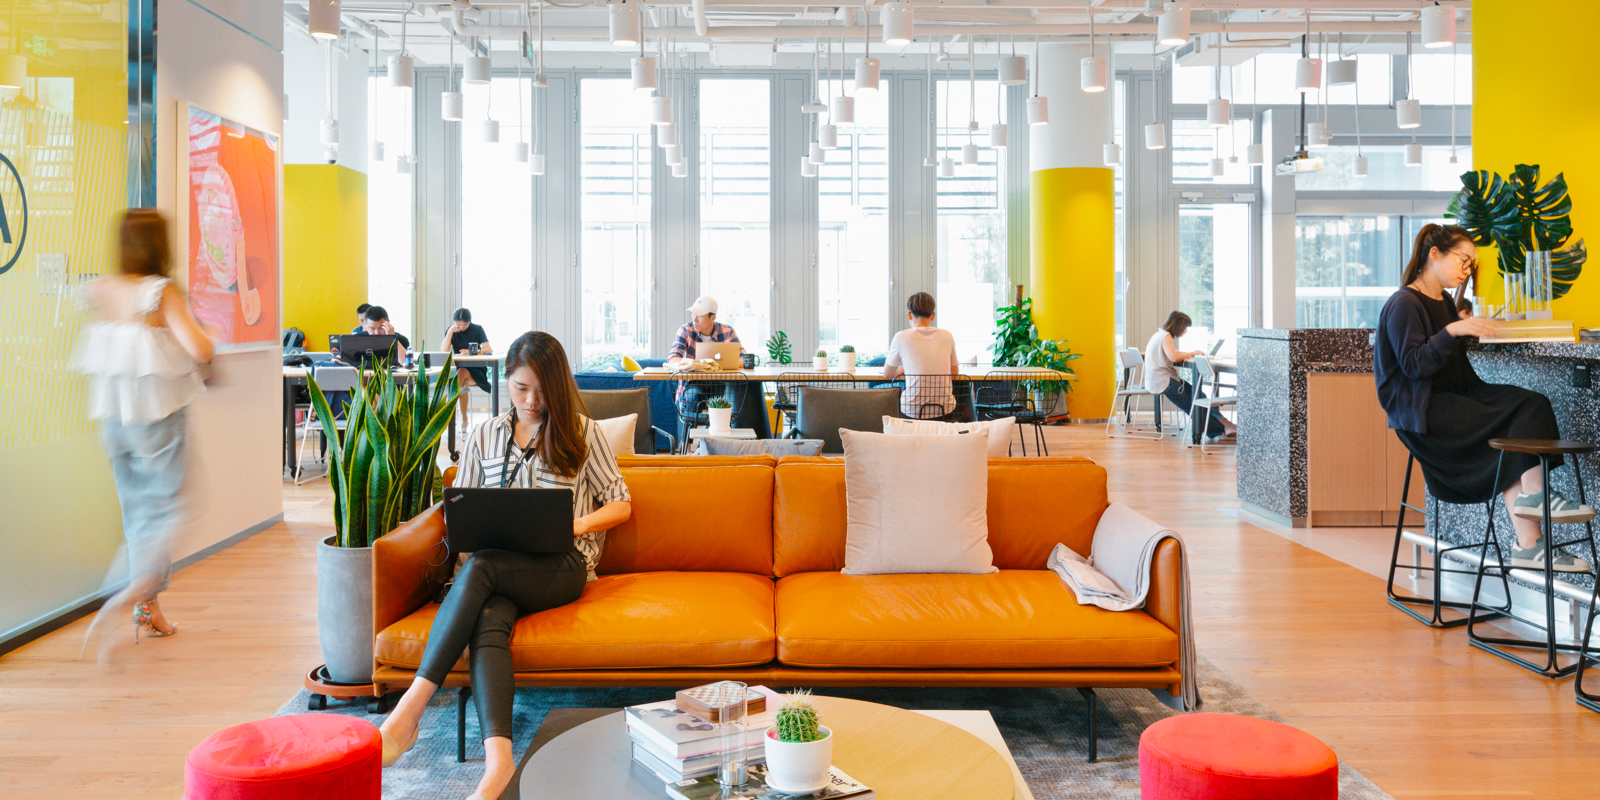 People working in a wework space